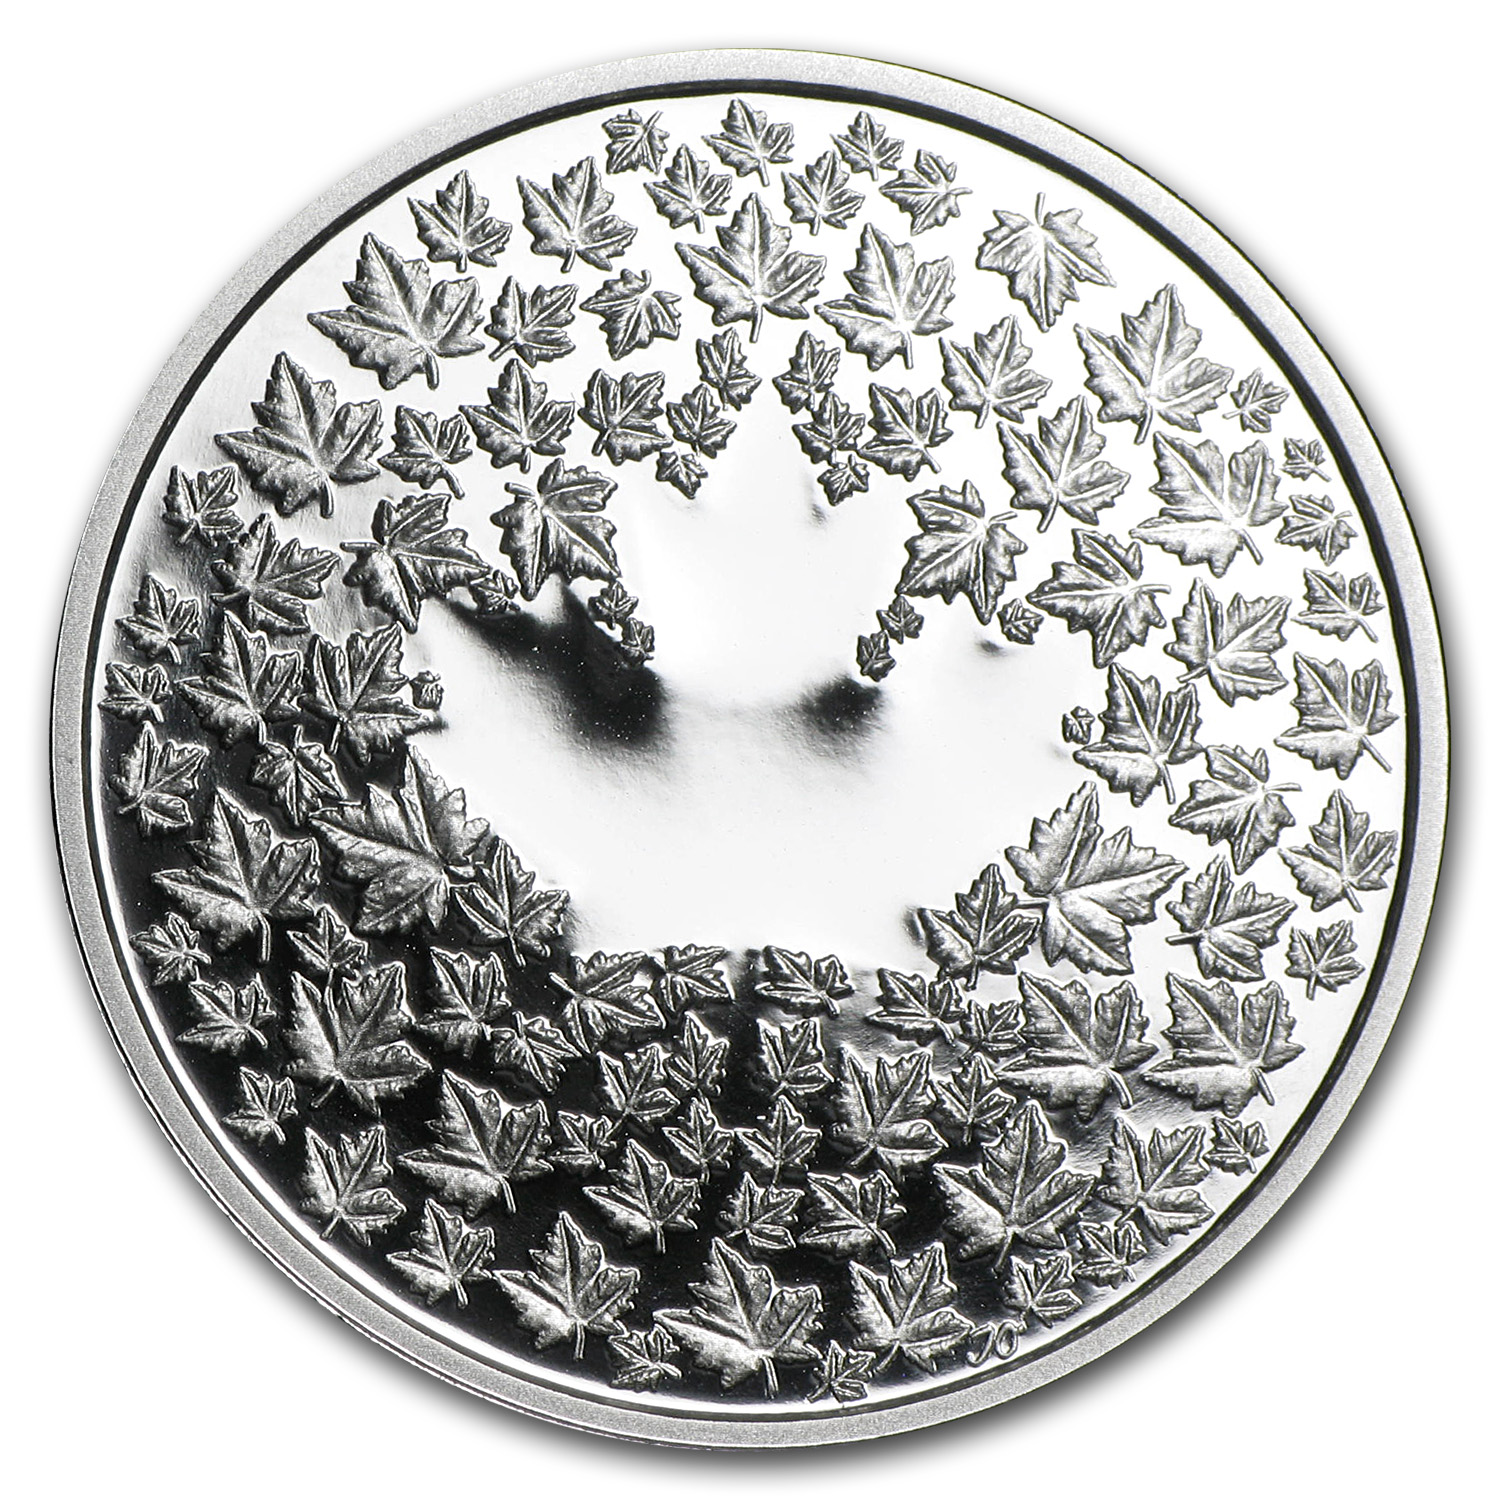 2013 Canada 1/4 oz Silver $3 Maple Leaf Impression